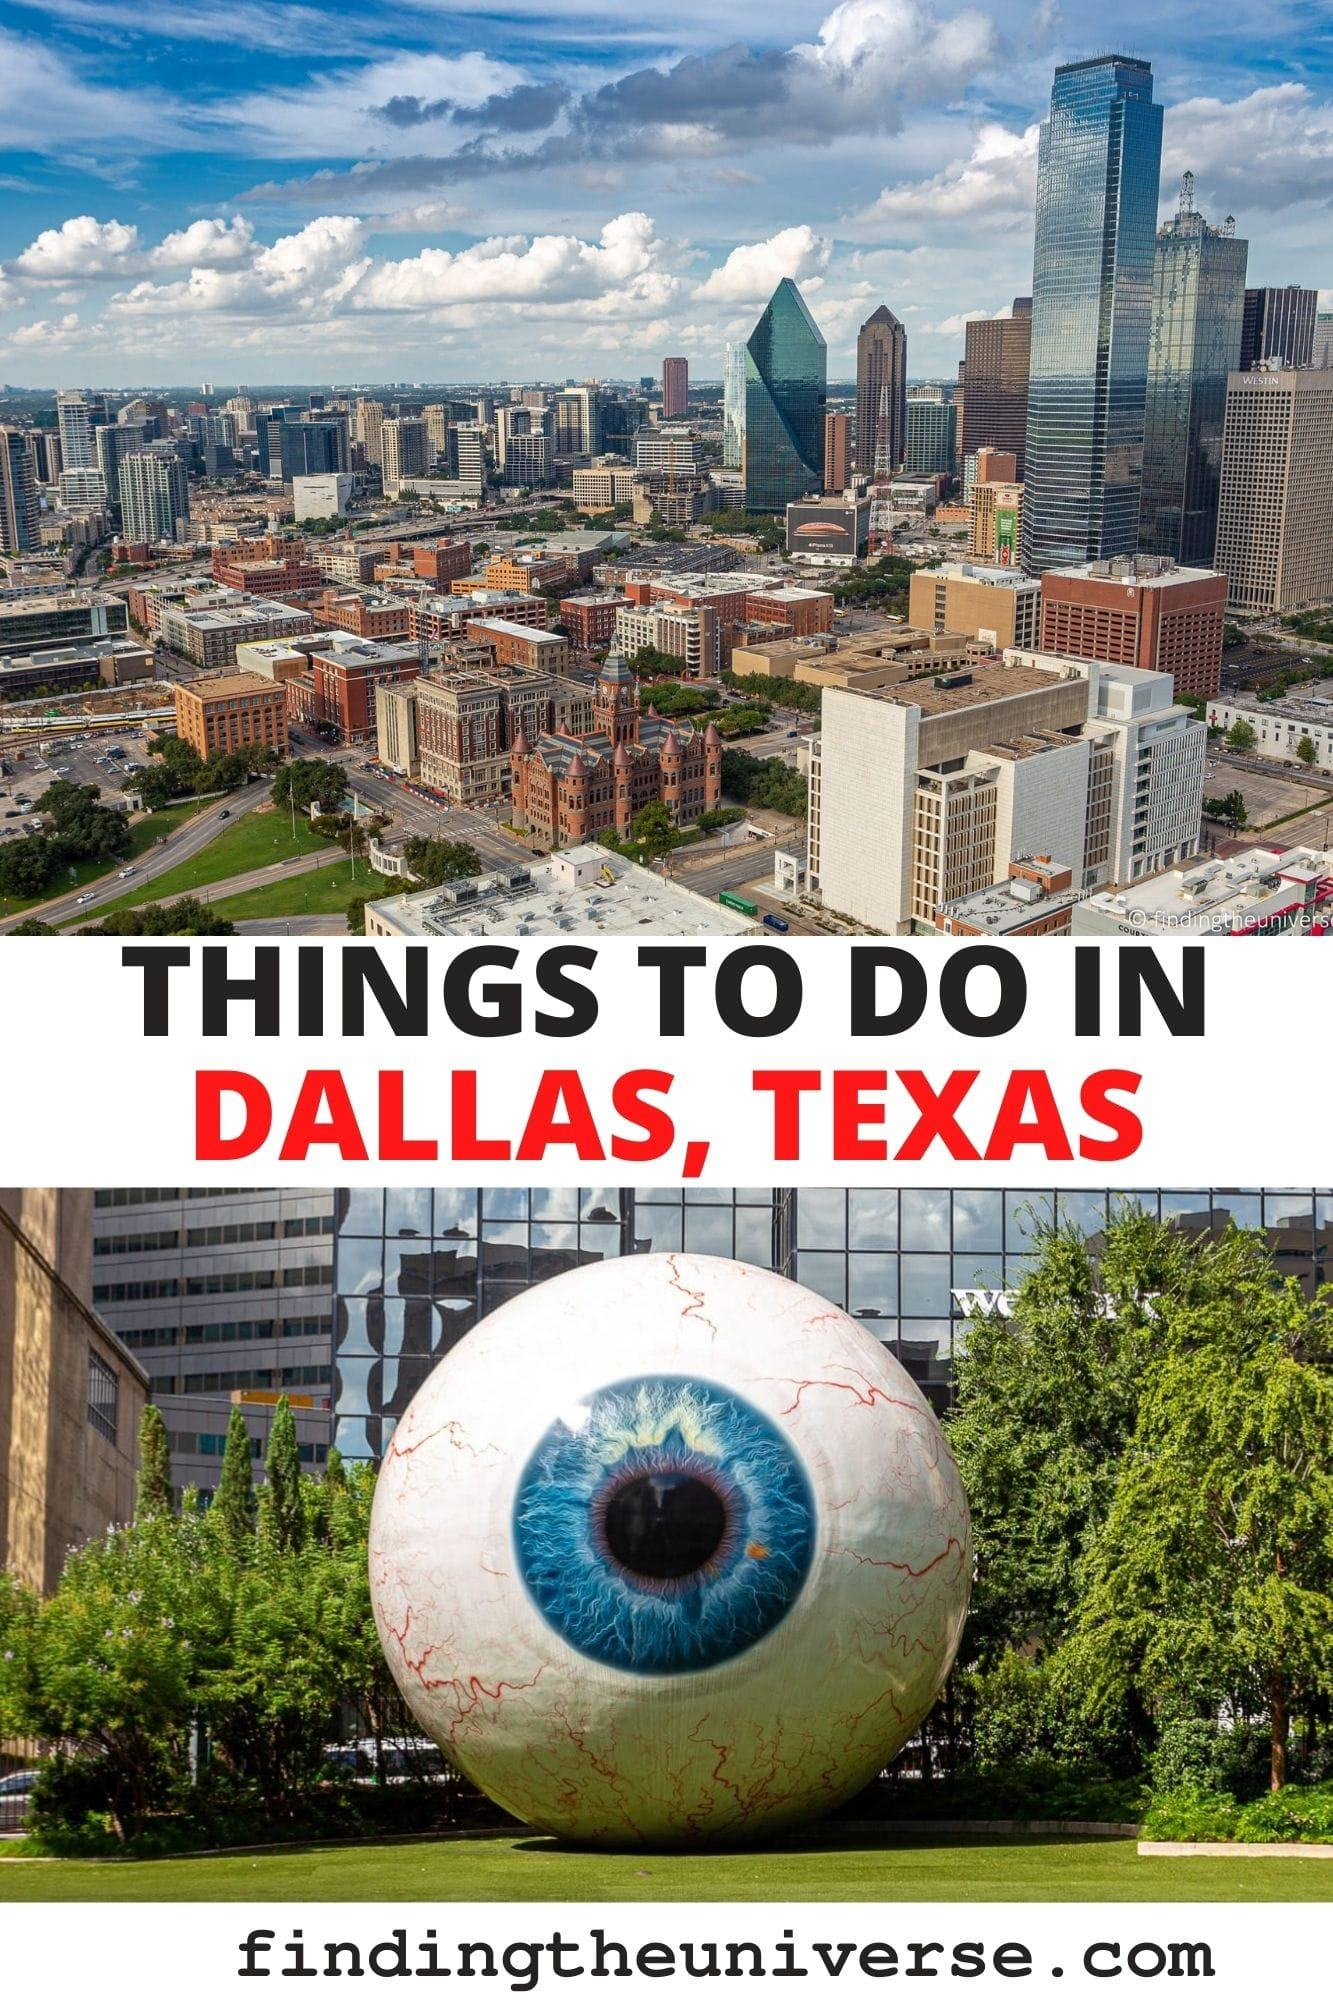 A detailed guide to things to do in Dallas Texas. All the top attractions, plus tips on getting around, where to stay and saving money!